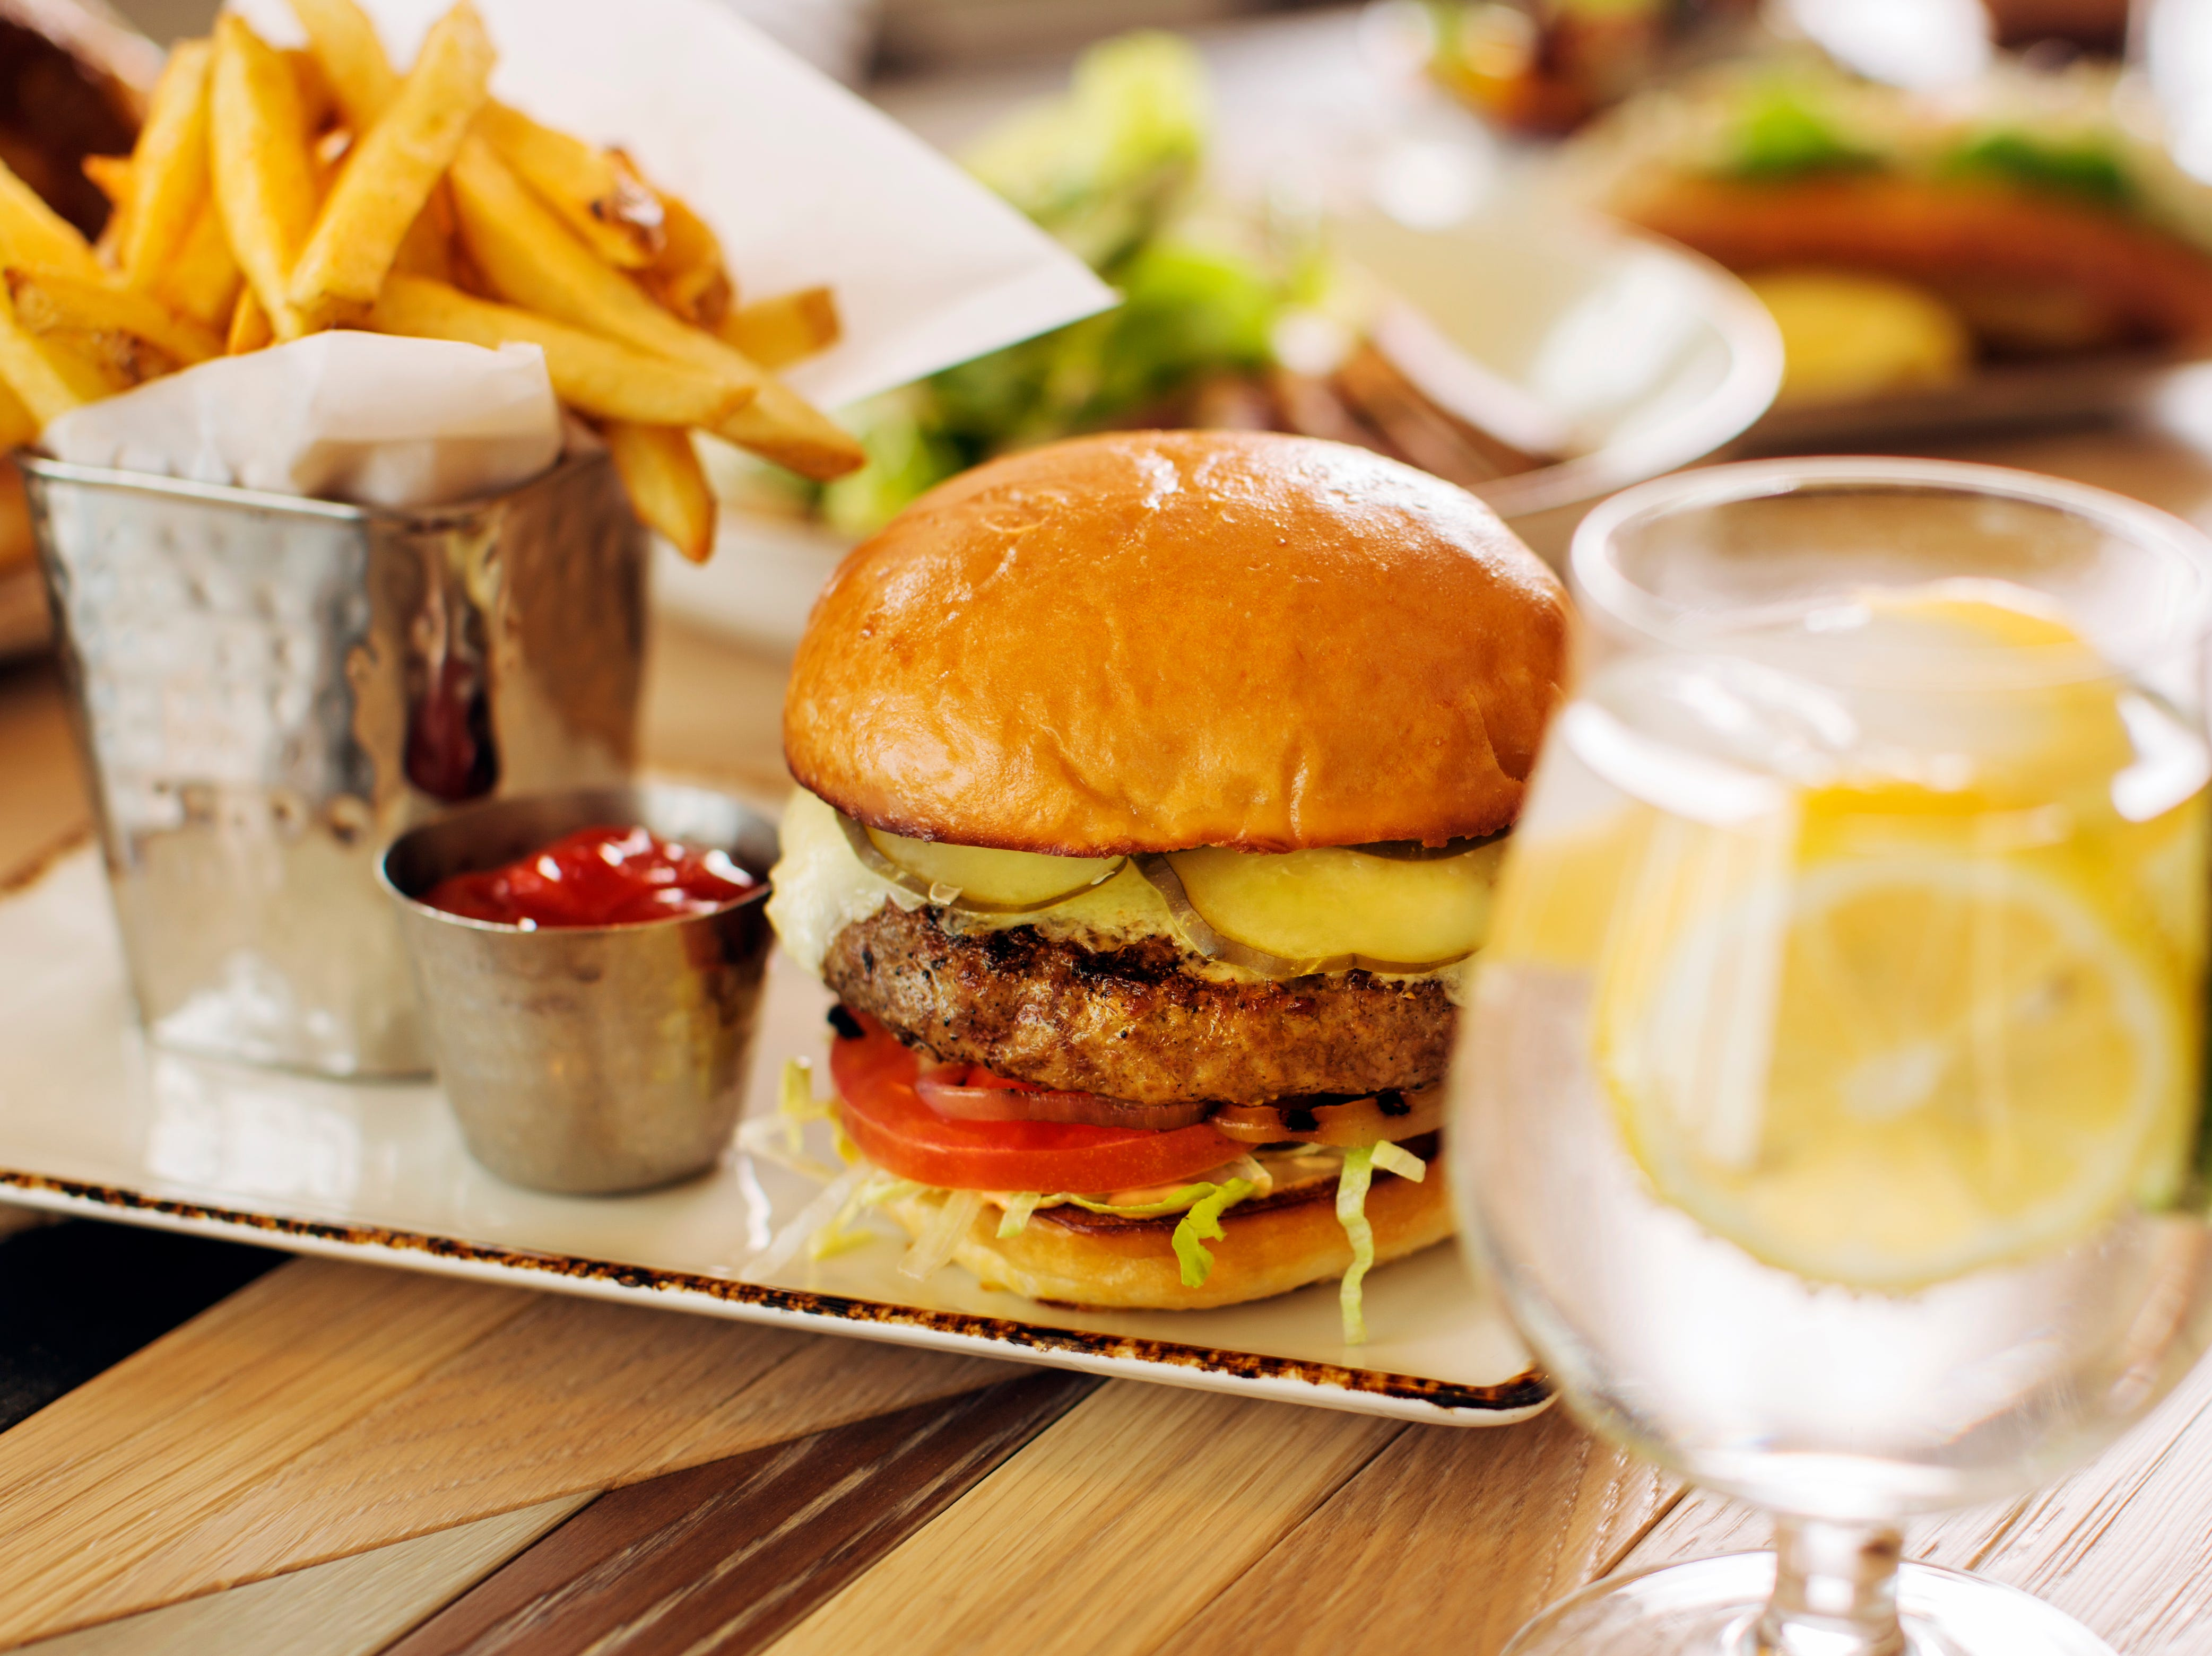 Main offerings at The Phoenician Tavern include six specialty burgers, among them the Lamb Burger topped with arugula, chimichurri, ricotta and lamb bacon, and The Cowboy featuring a free range bison patty with fried onions, jalapeños, bacon, sharp cheddar and steak sauce.